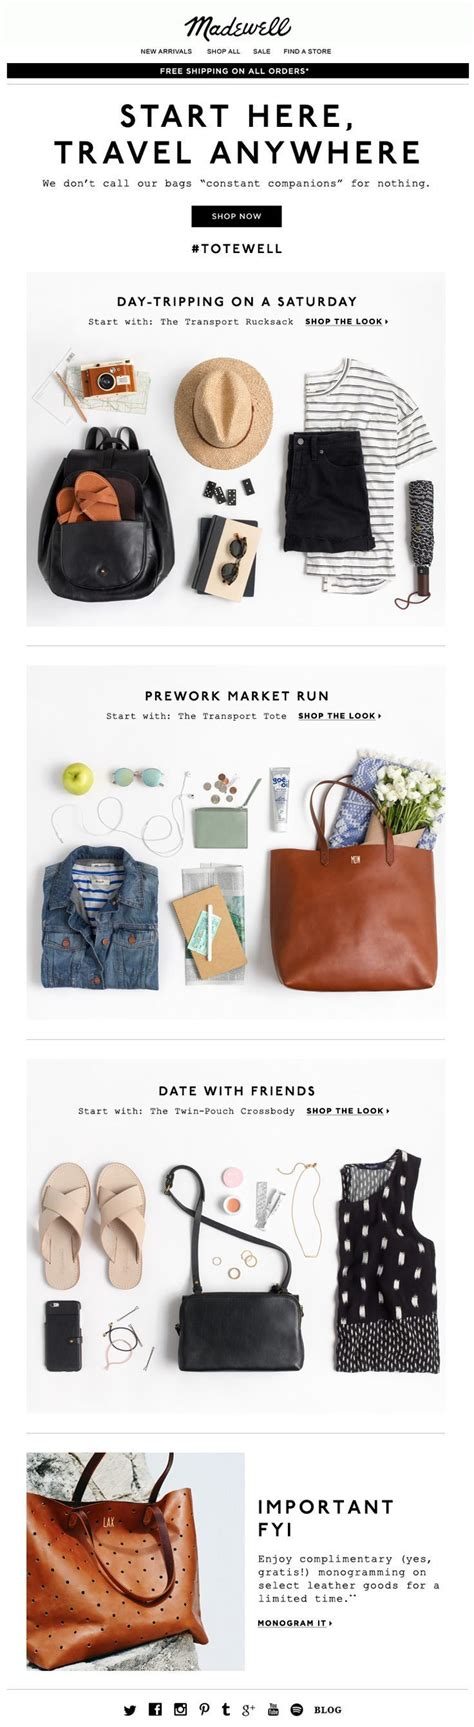 fashion design with marketing madewell newsletter fashion email fashion design